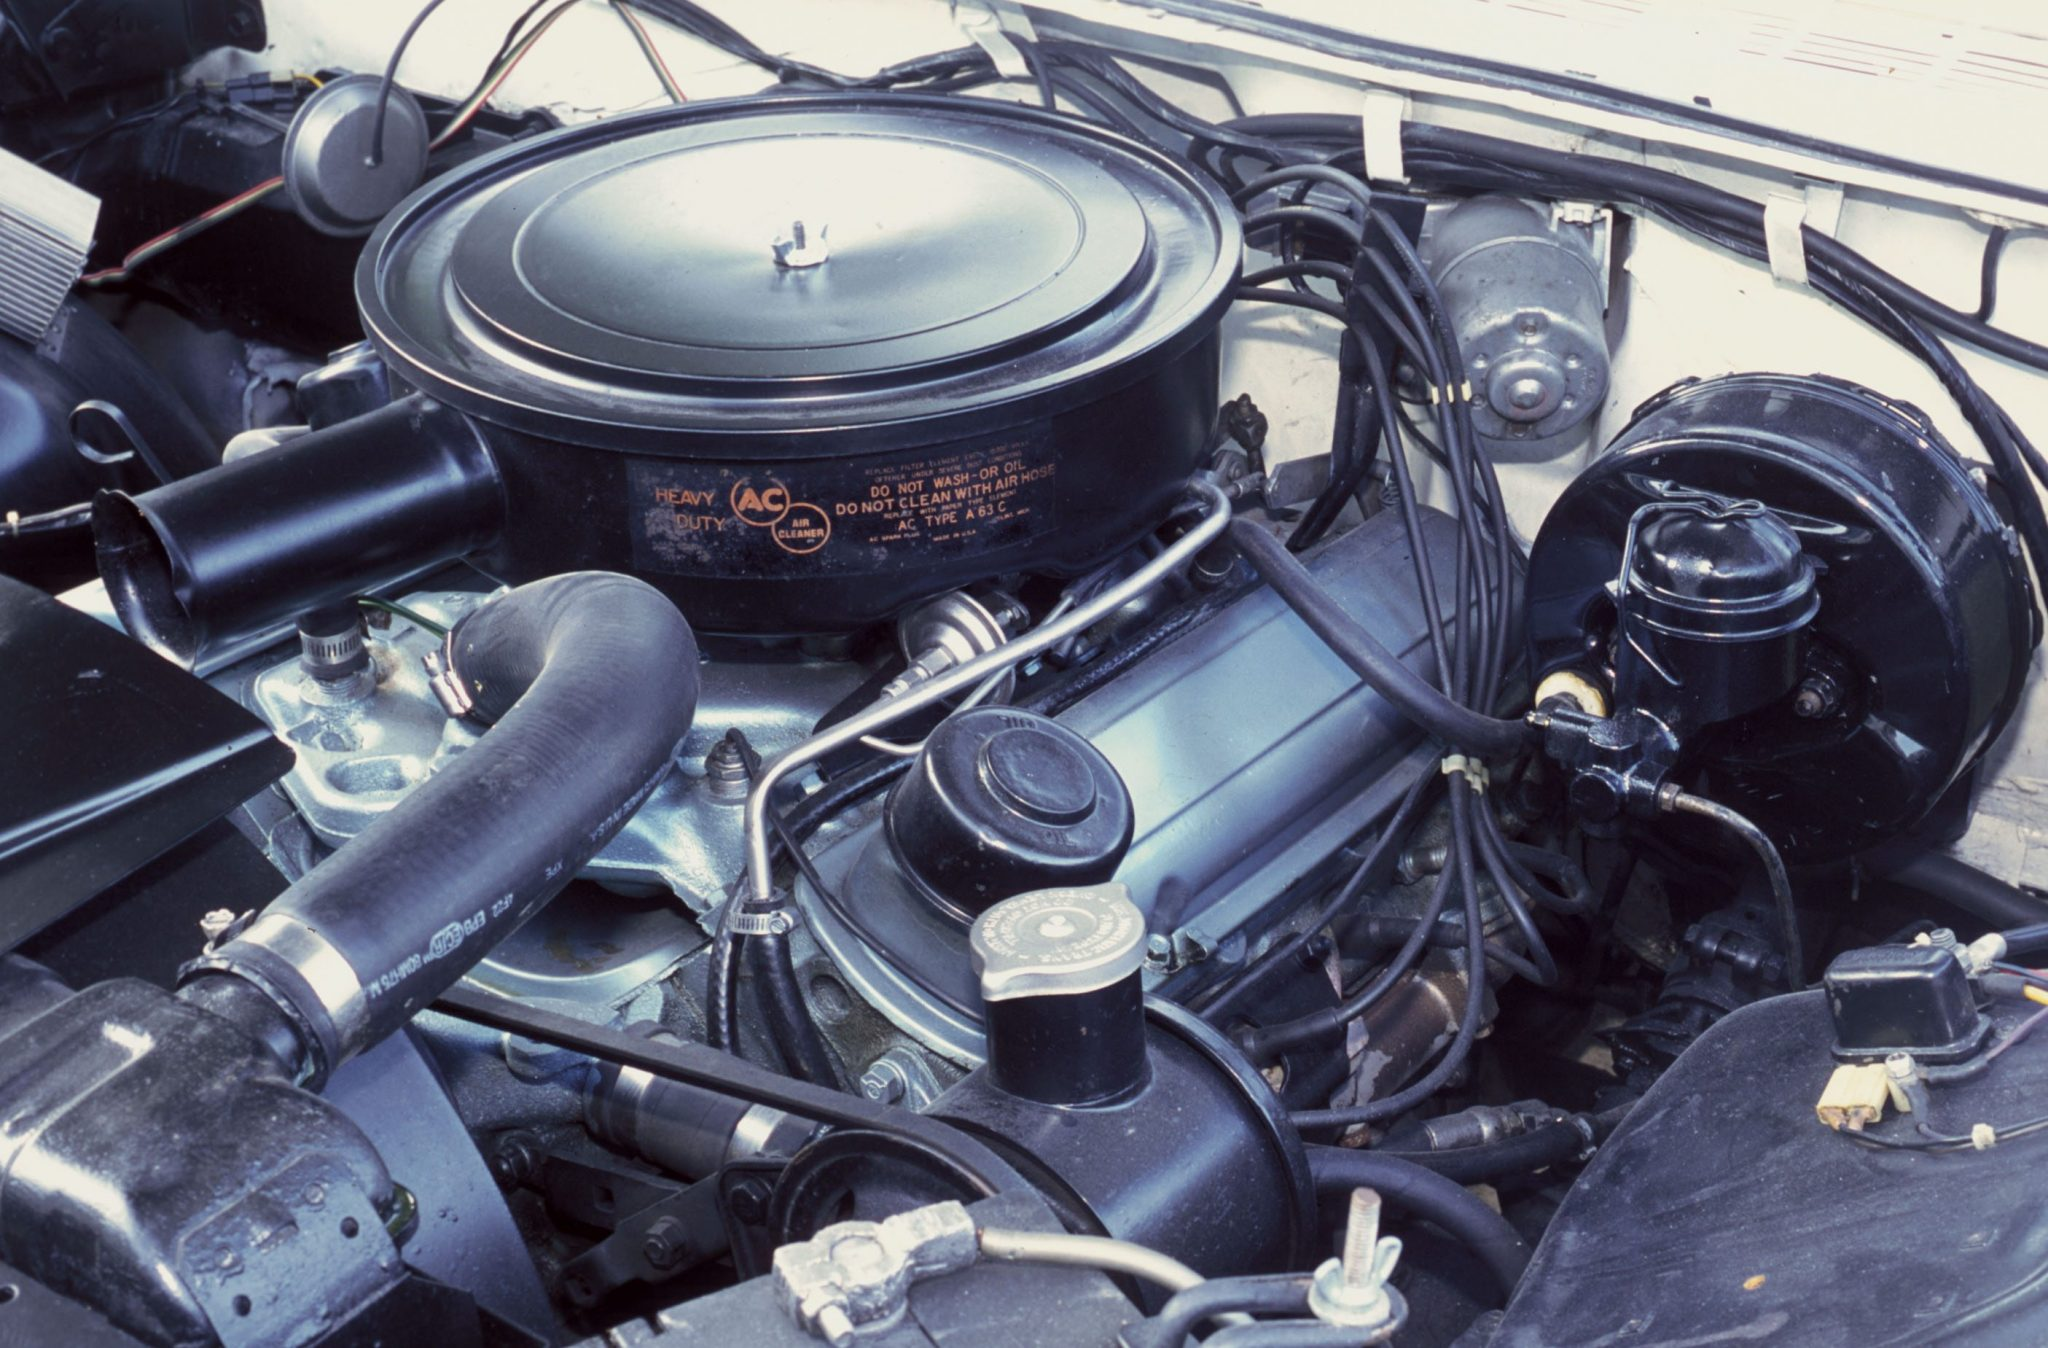 1959 Pontiac Bonneville 389 V8 Engine